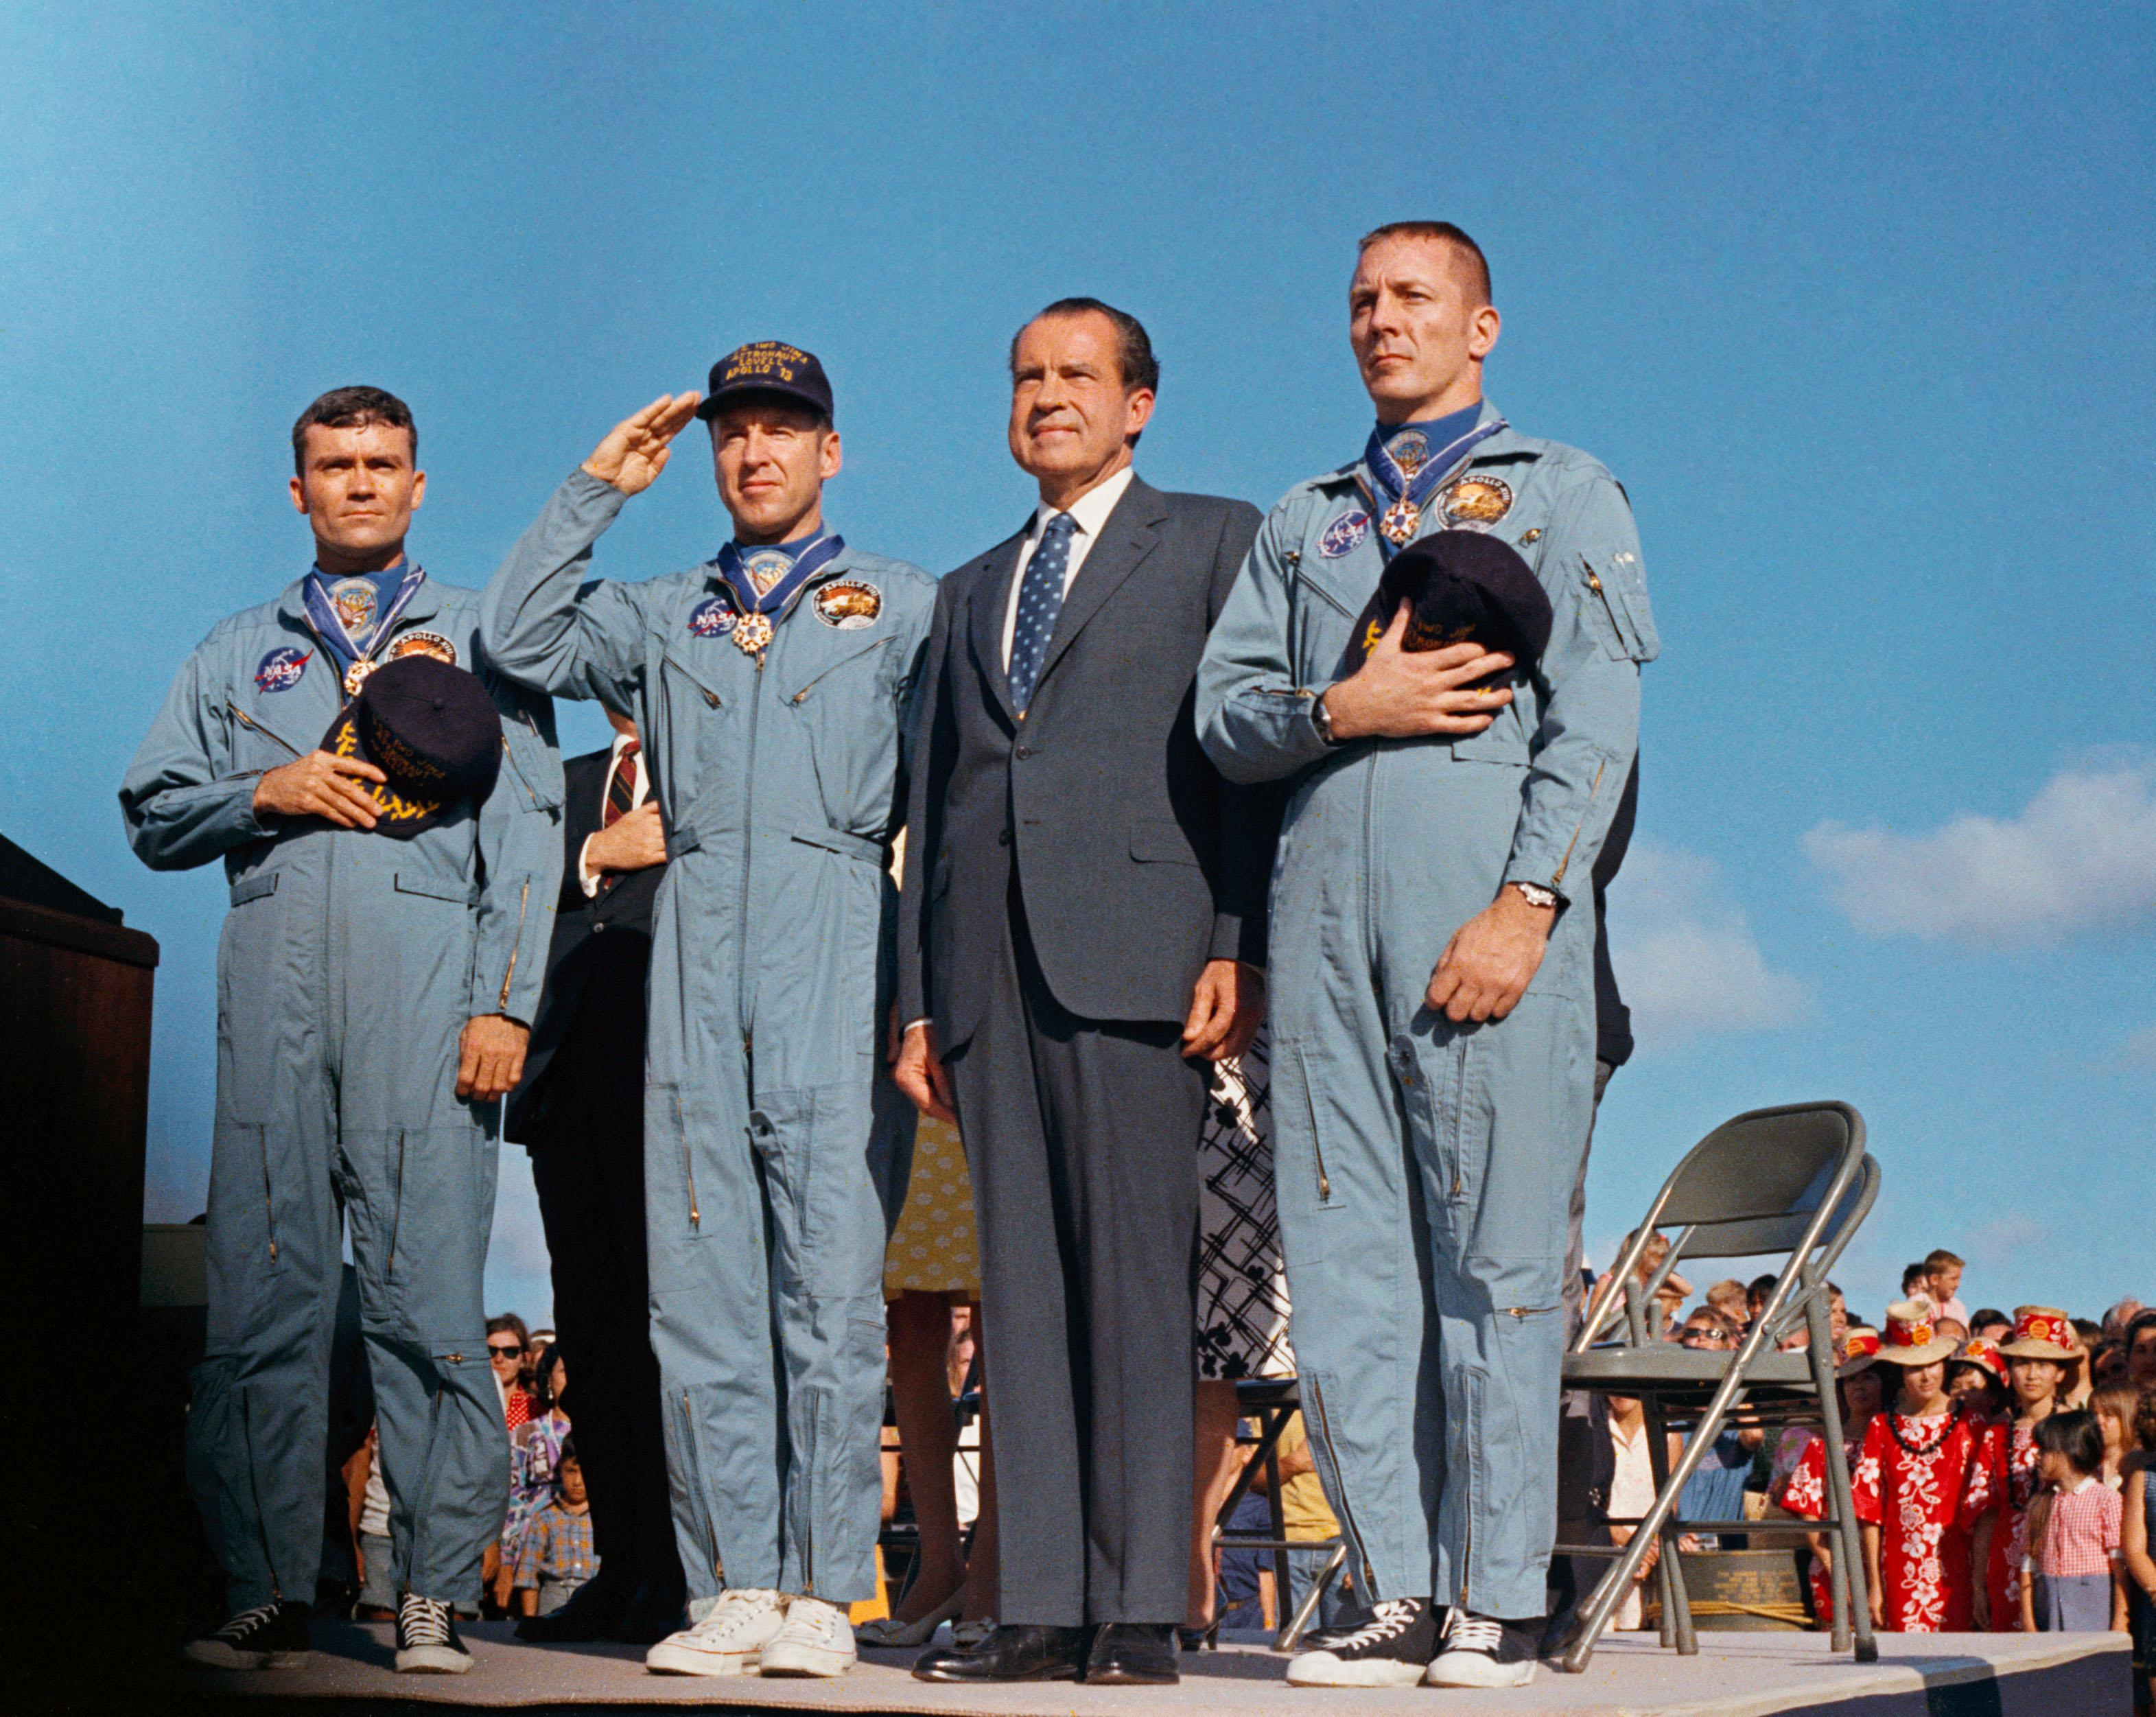 apollo 13 crew - photo #3